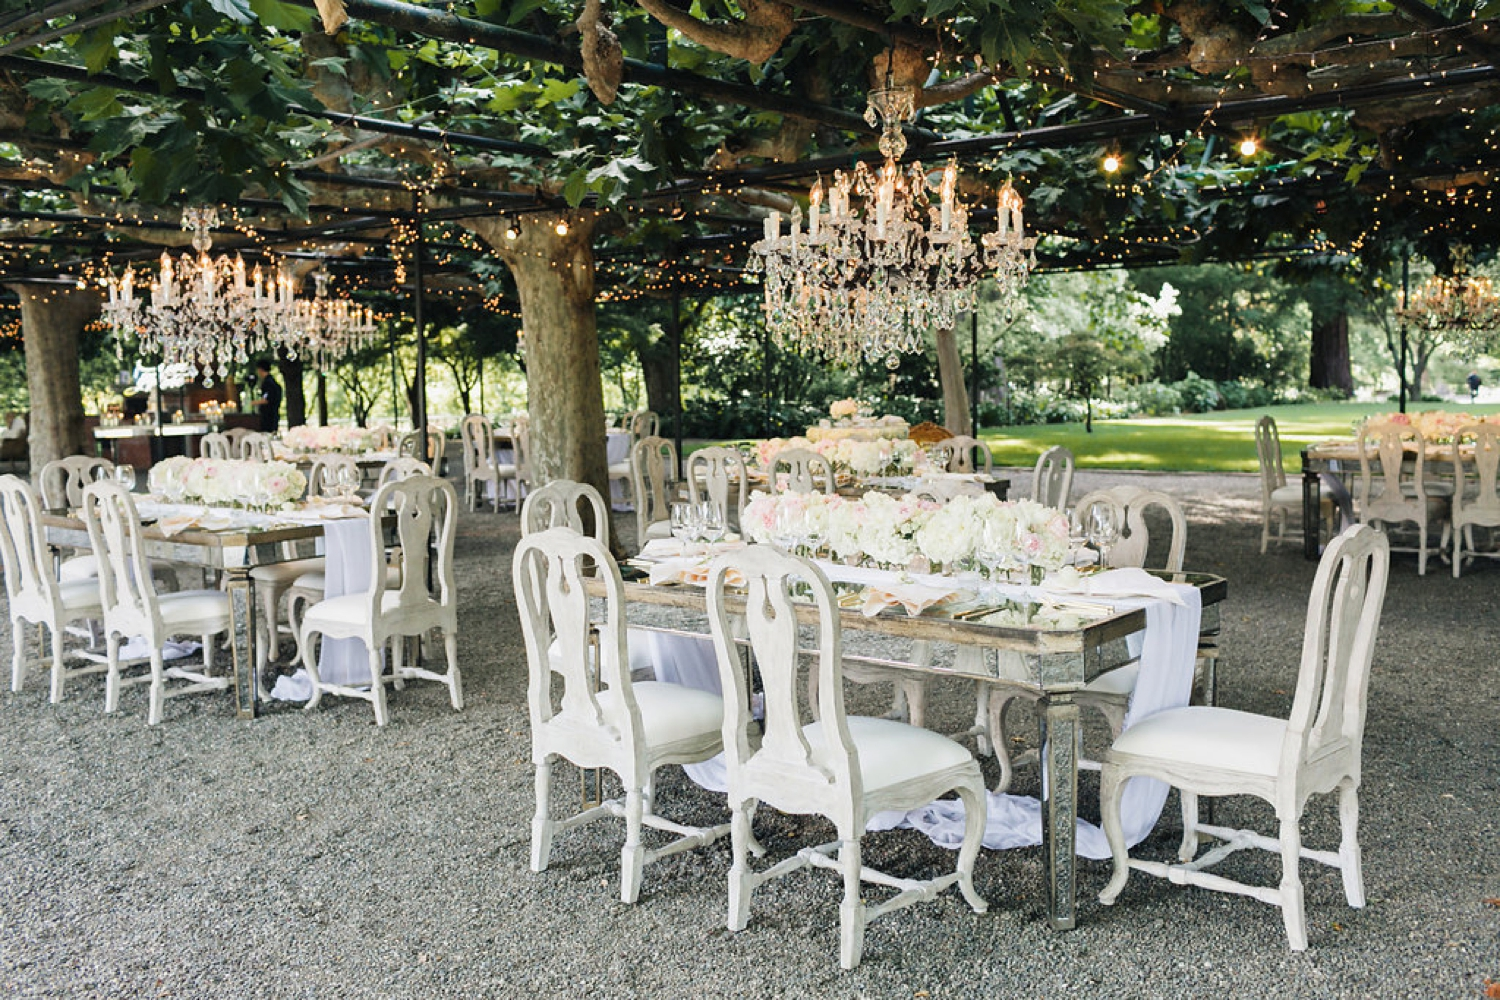 LVL Weddings and Events Beaulieu Gardens